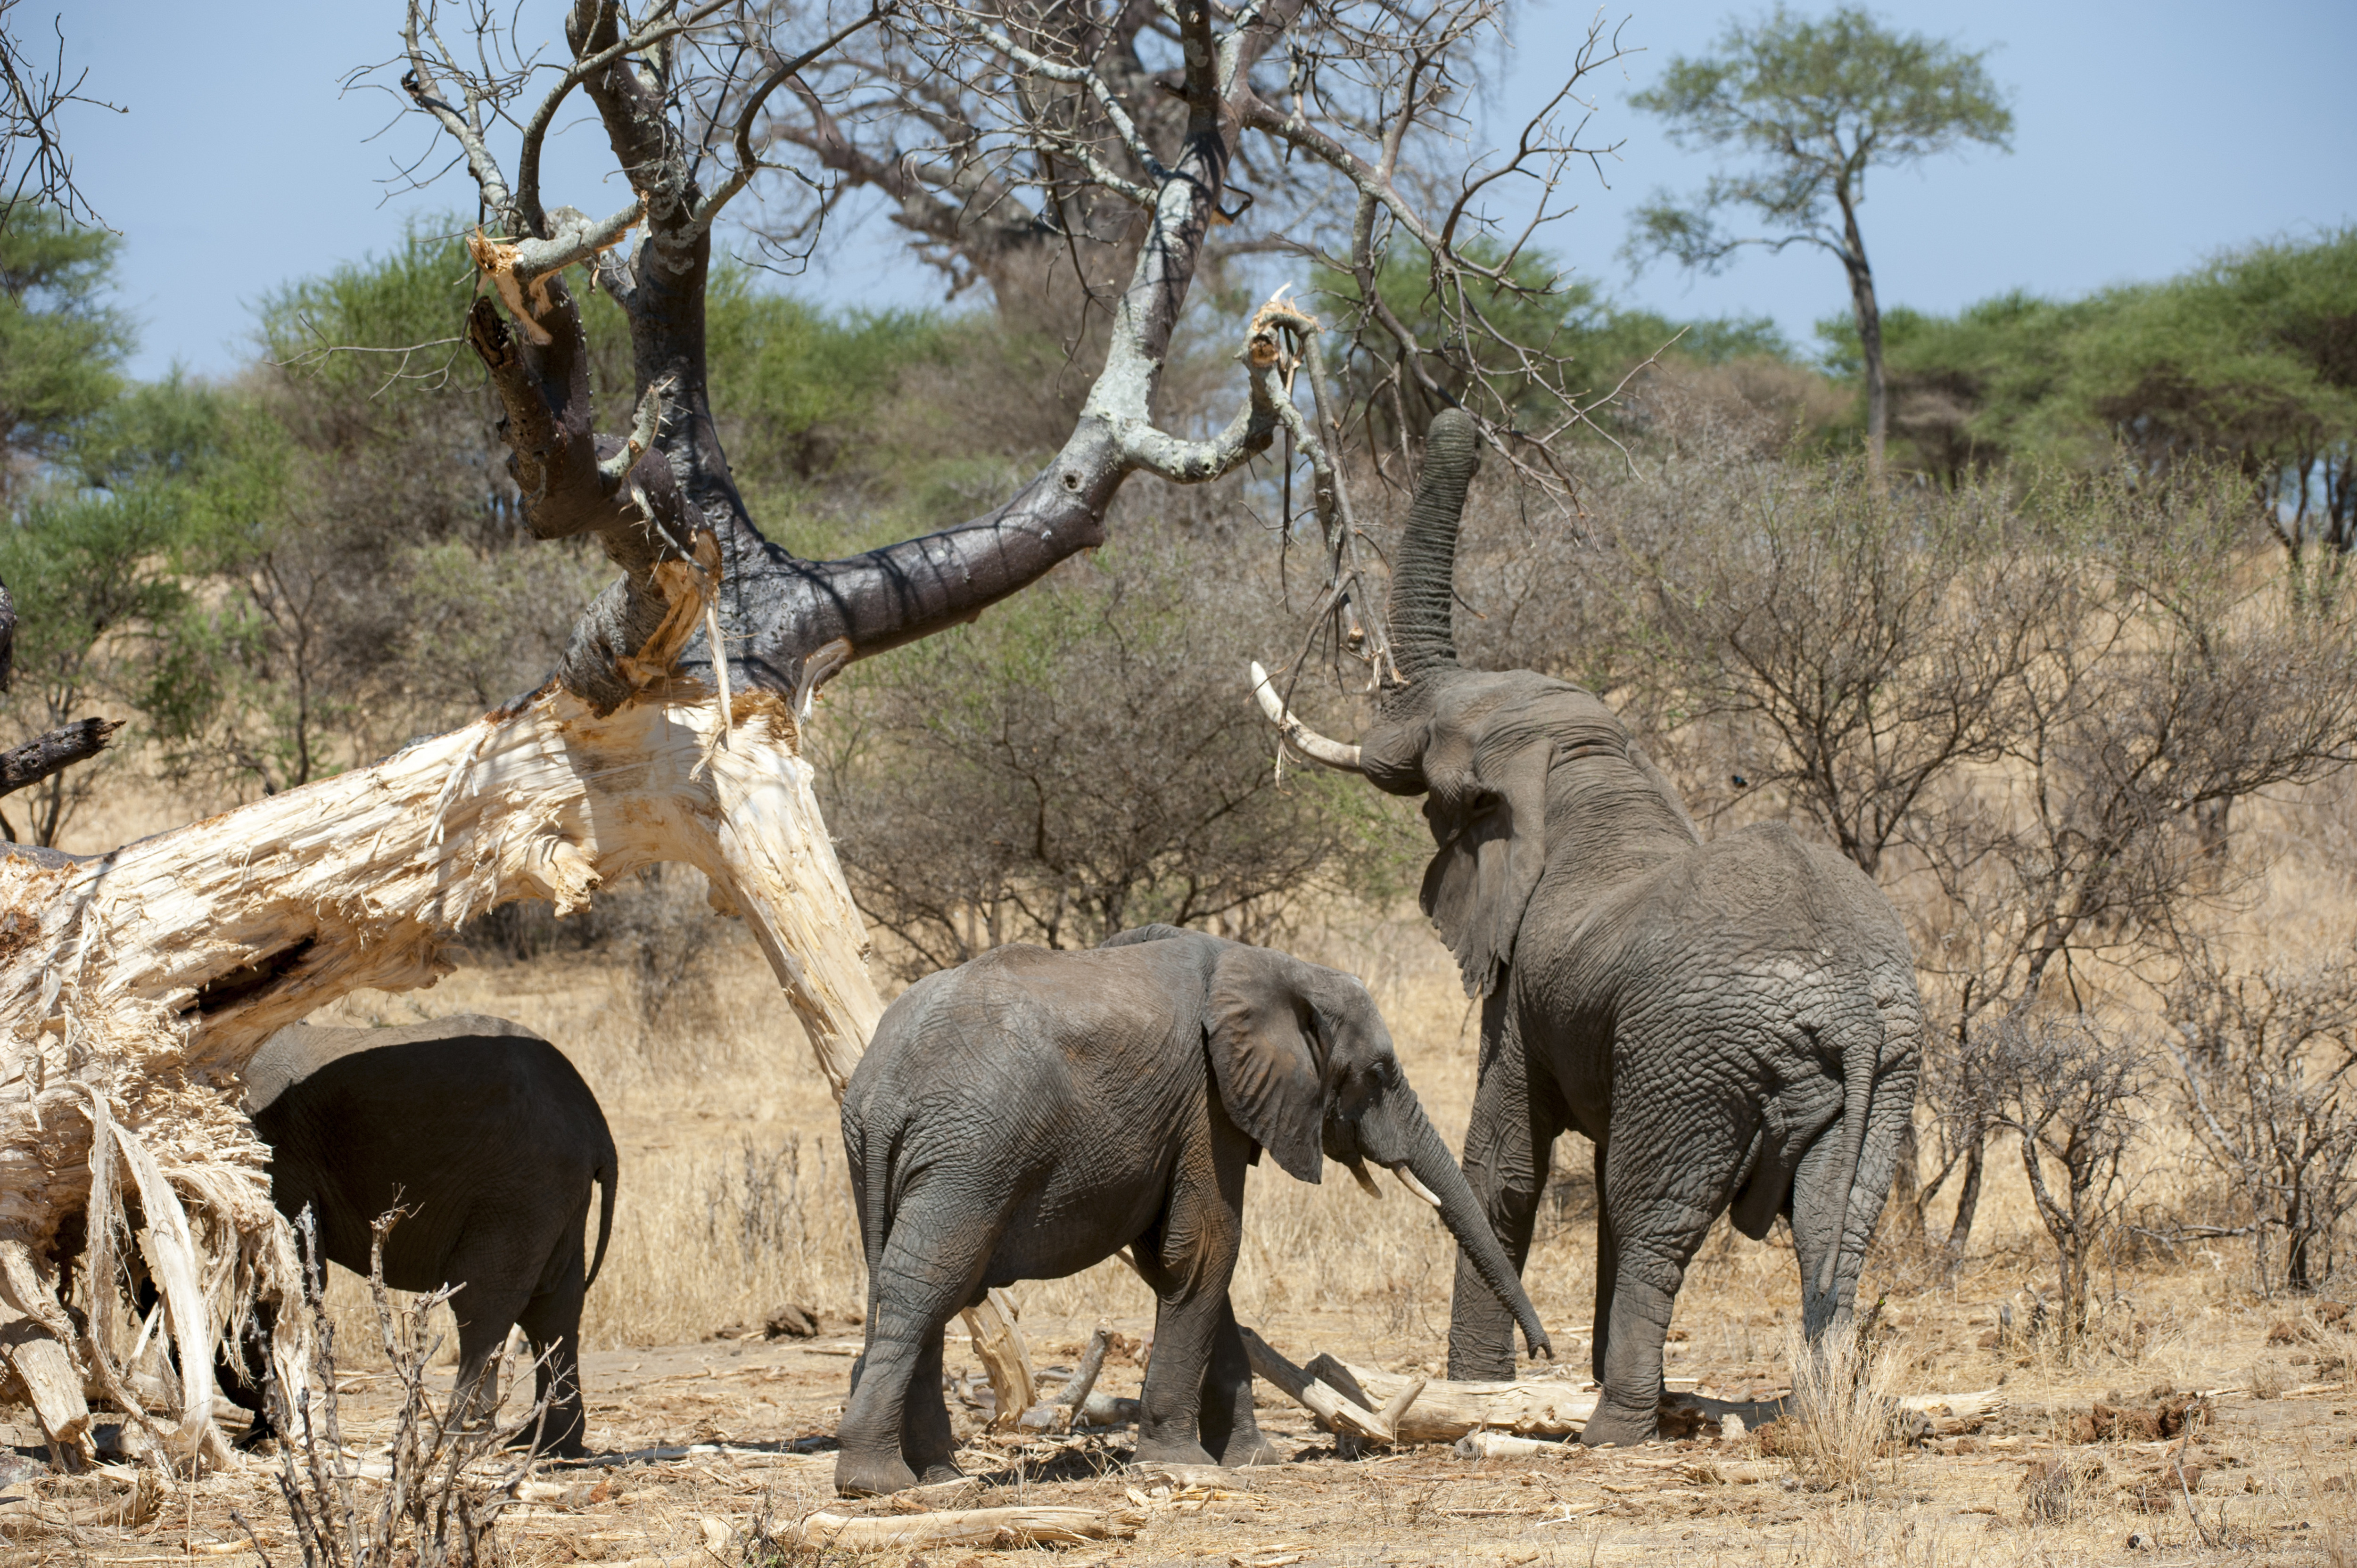 African elephants seen feeding on a tree in Tarangire National Park in Tanzania, East Africa, in Oct. 2013